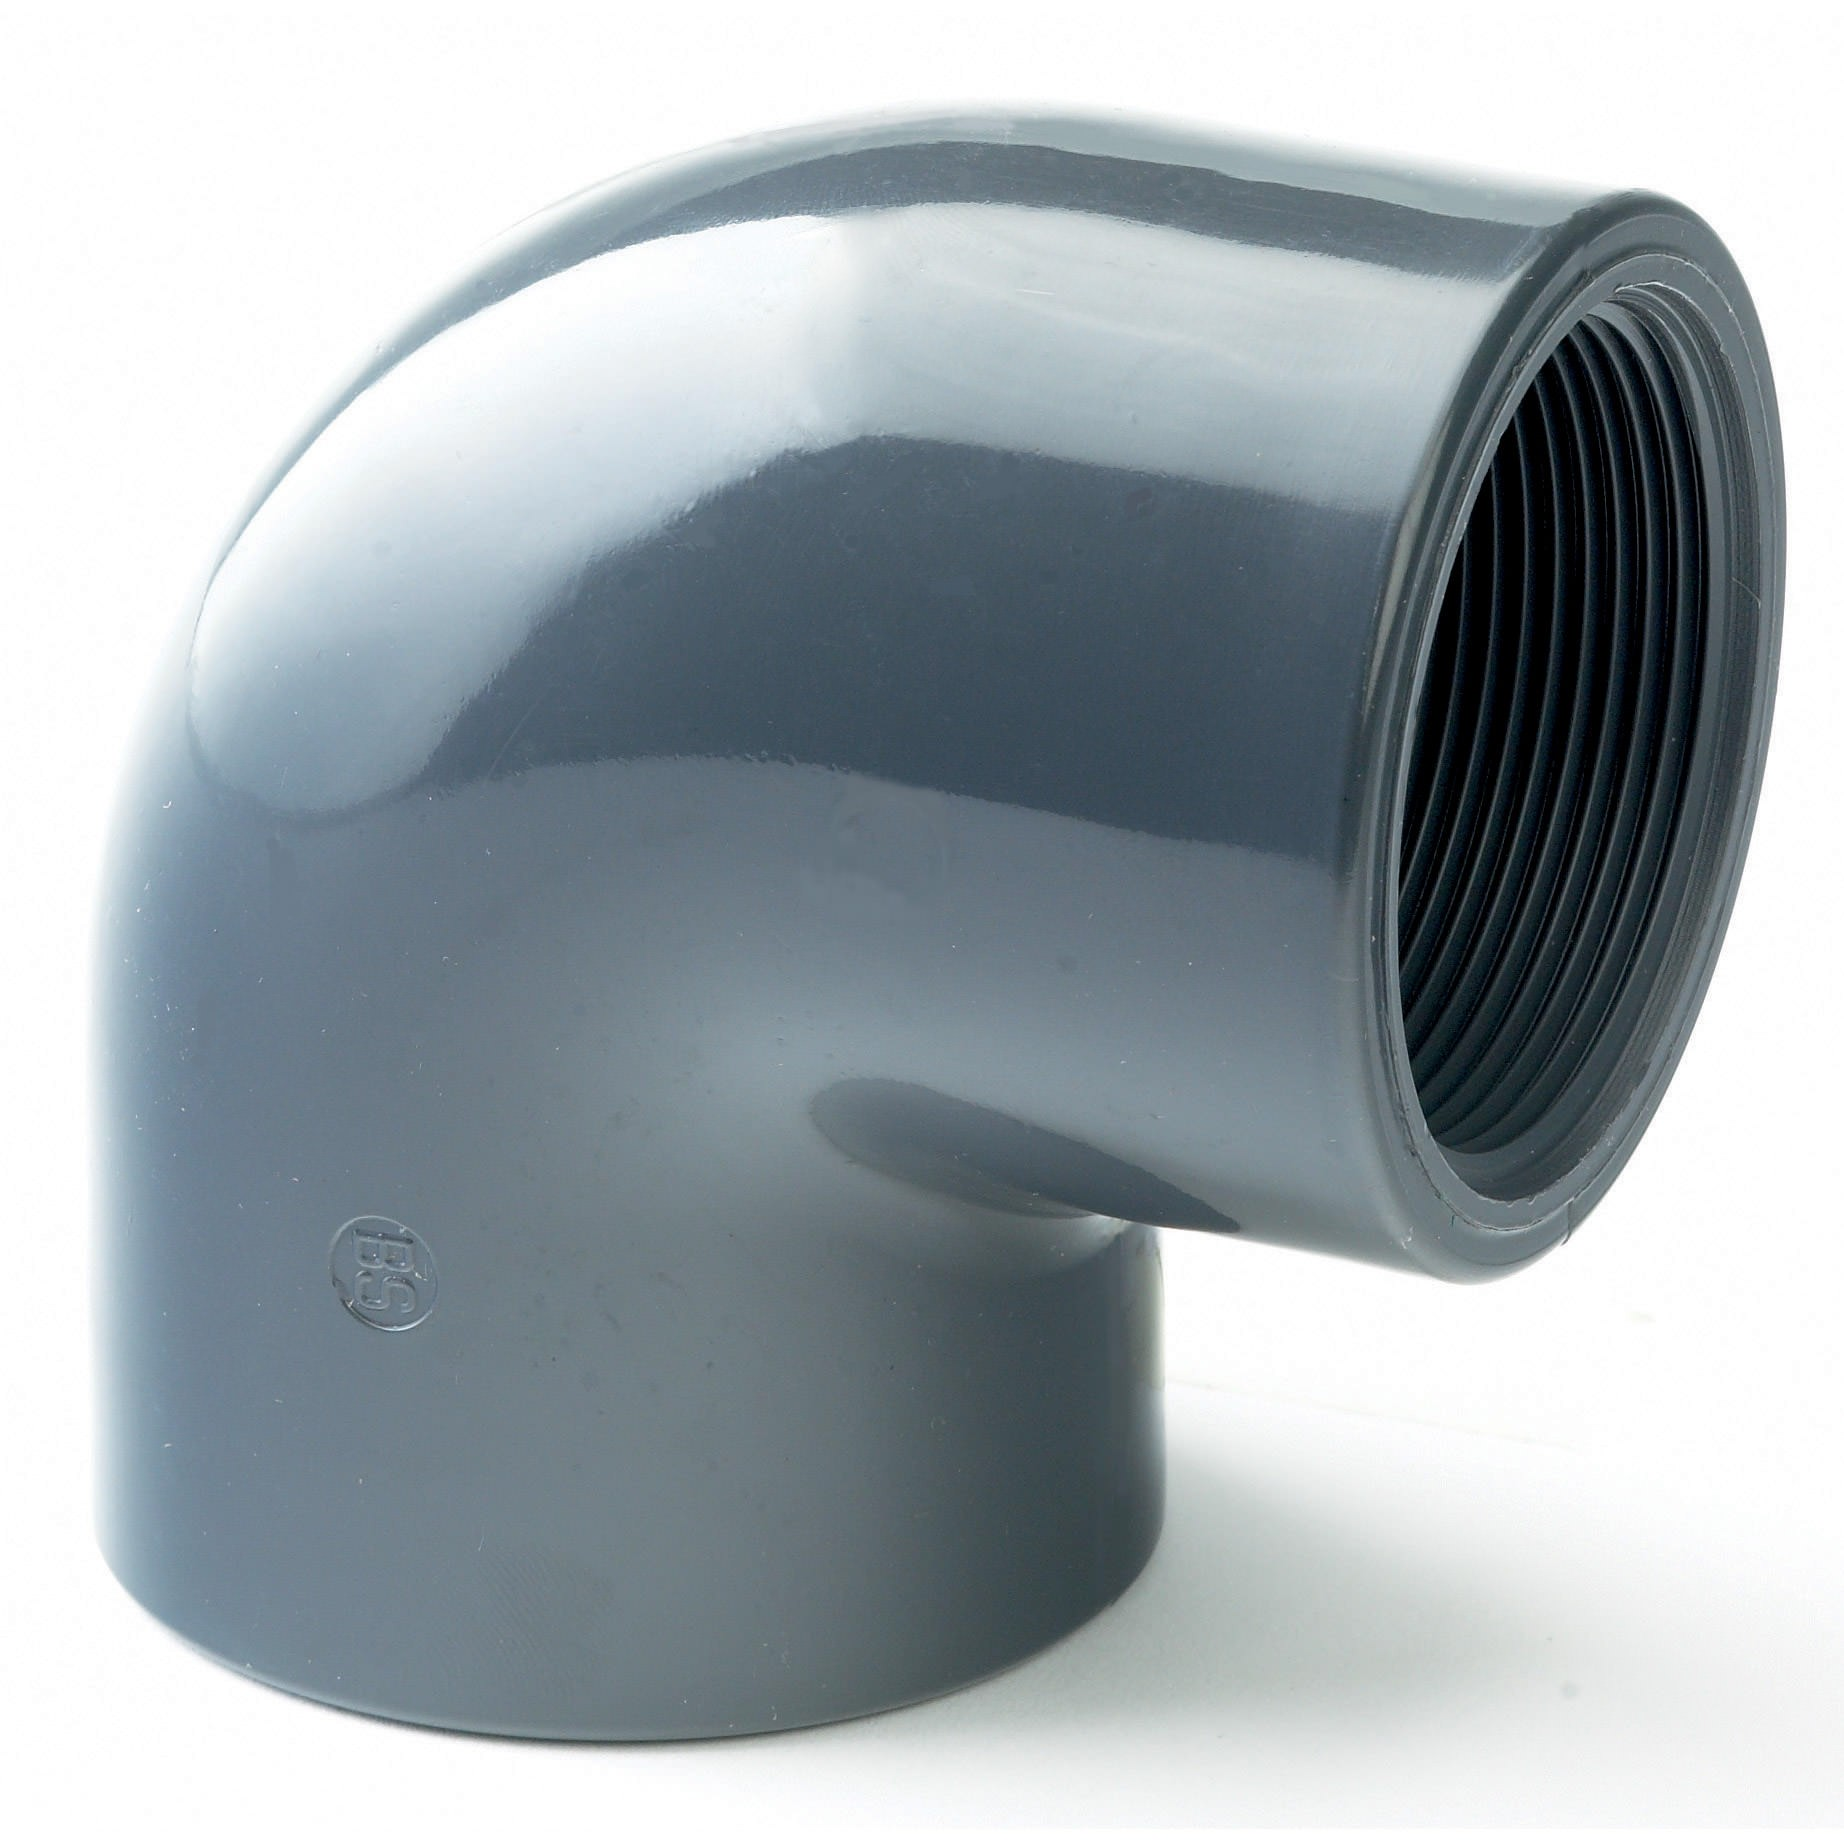 PVC-U Class E Plain Threaded Elbow 90º 32mm